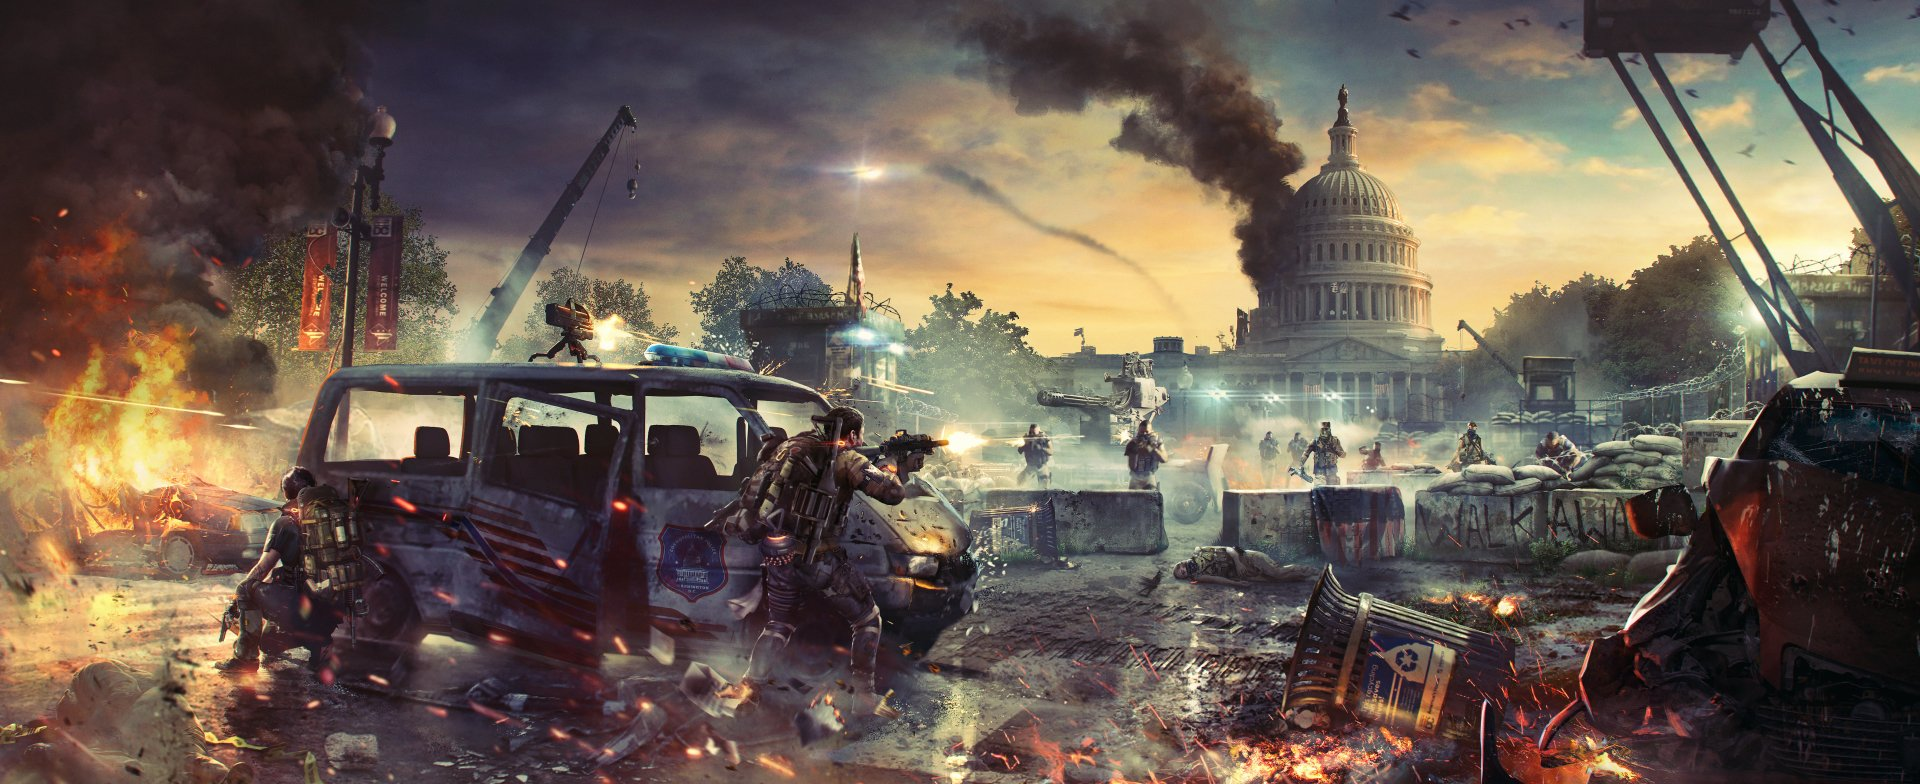 Video Game - Tom Clancy's The Division 2 Wallpaper